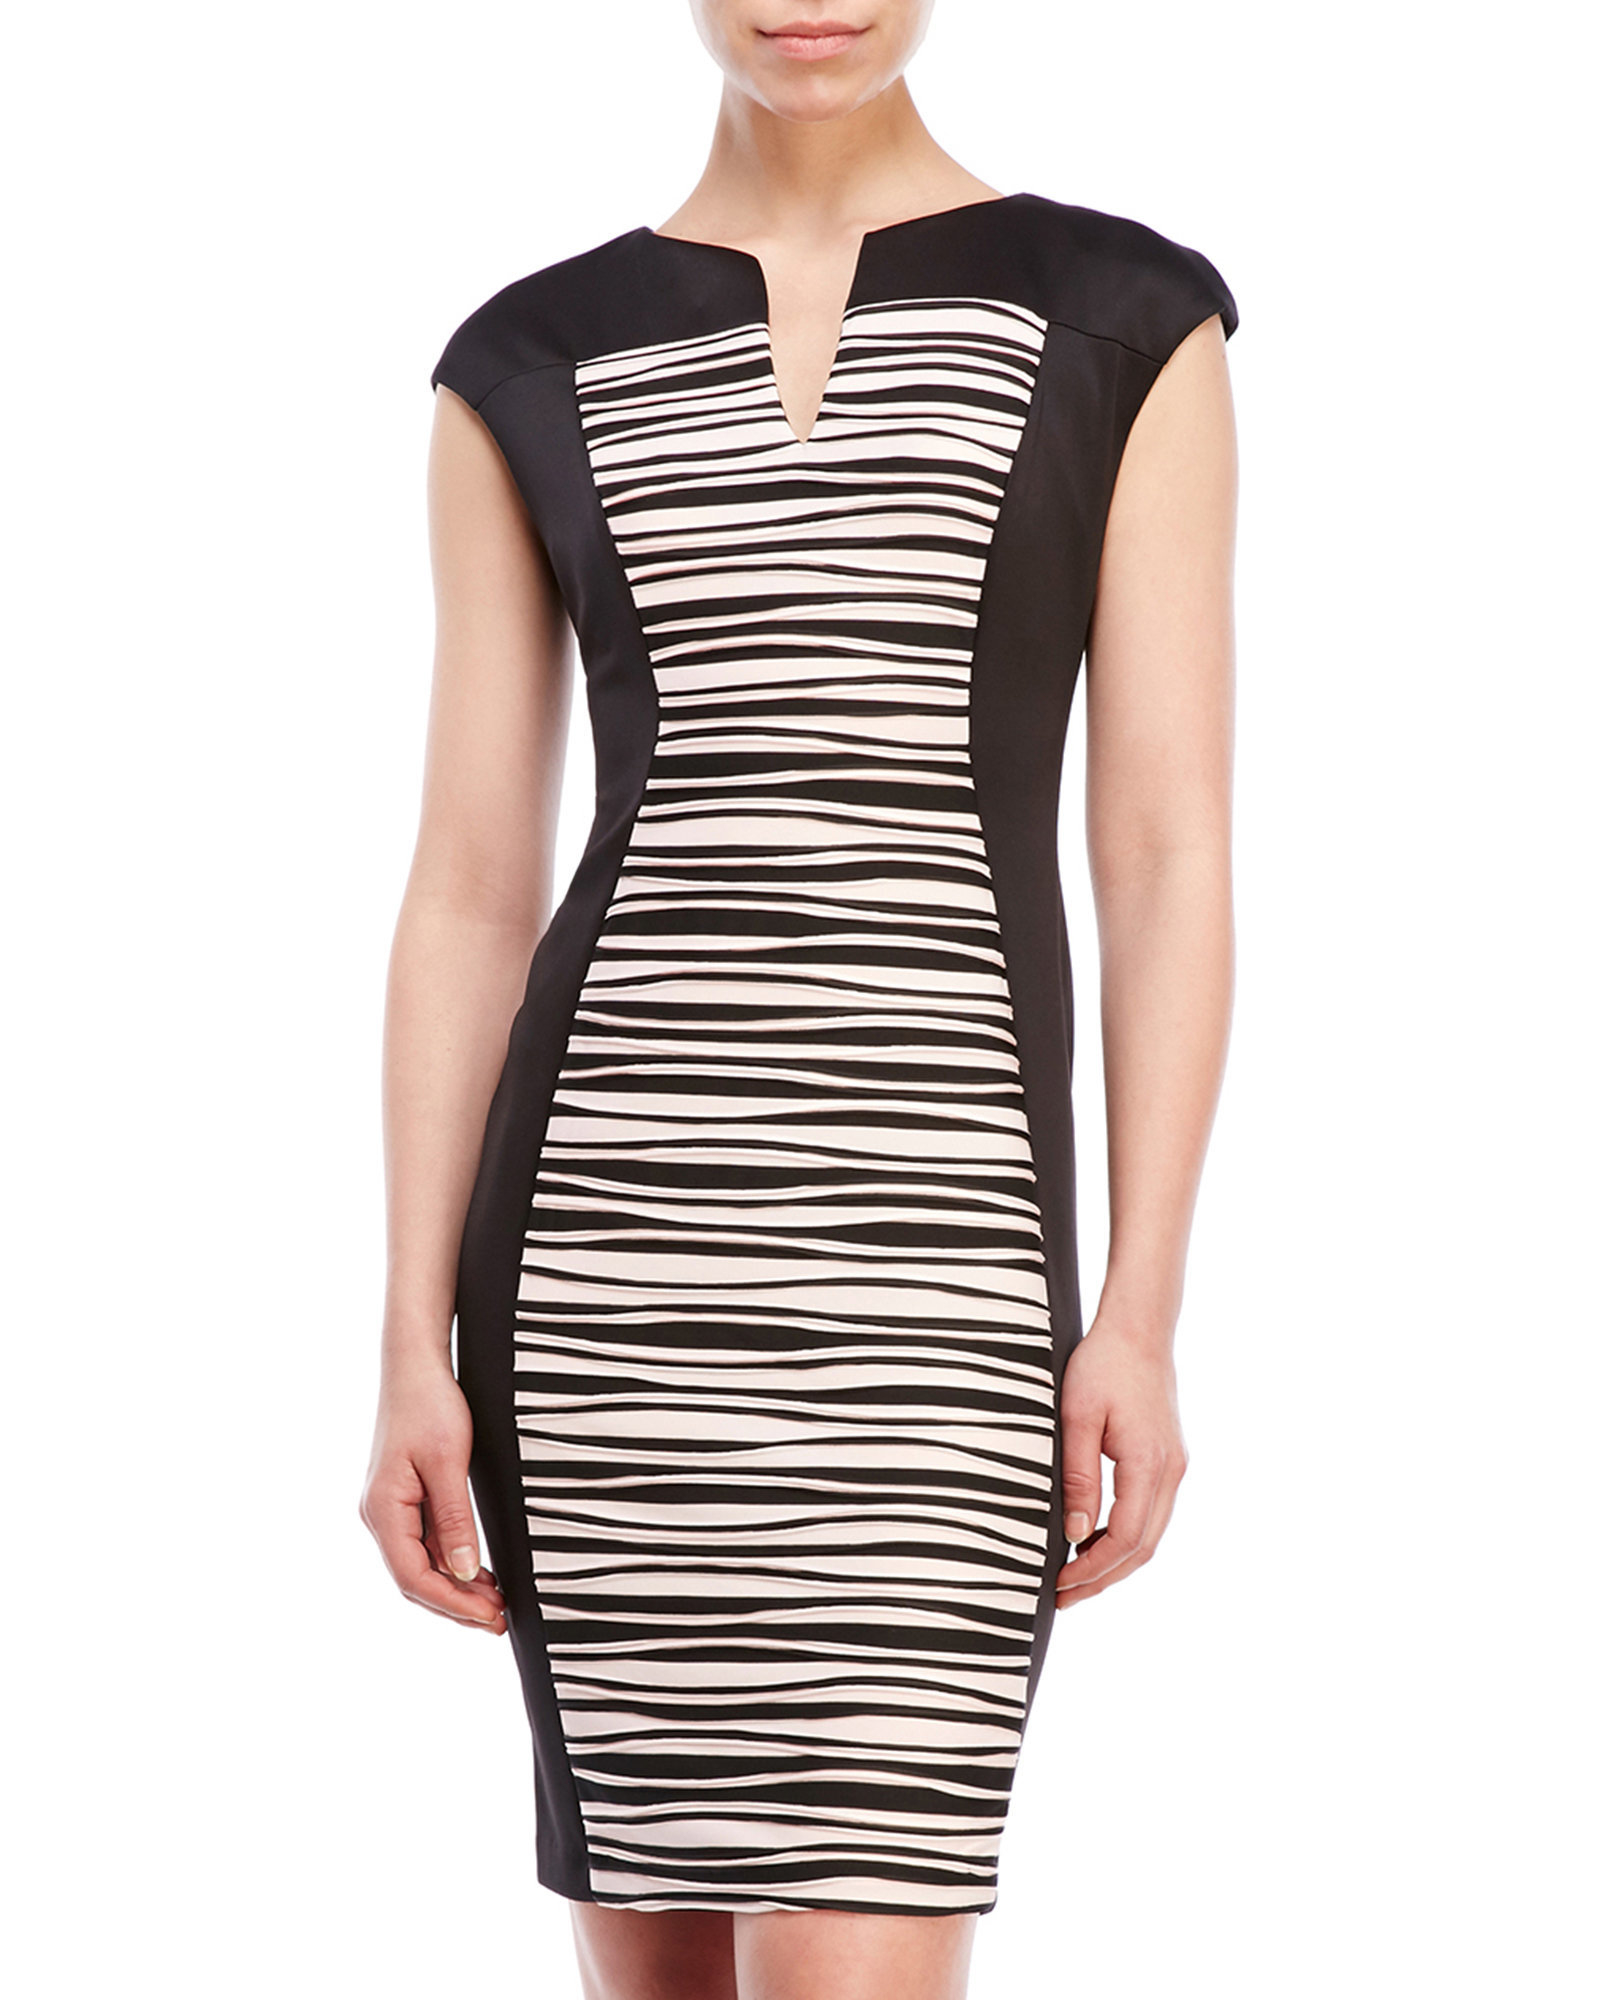 Connected Apparel Color Block Rippled Sheath Dress In